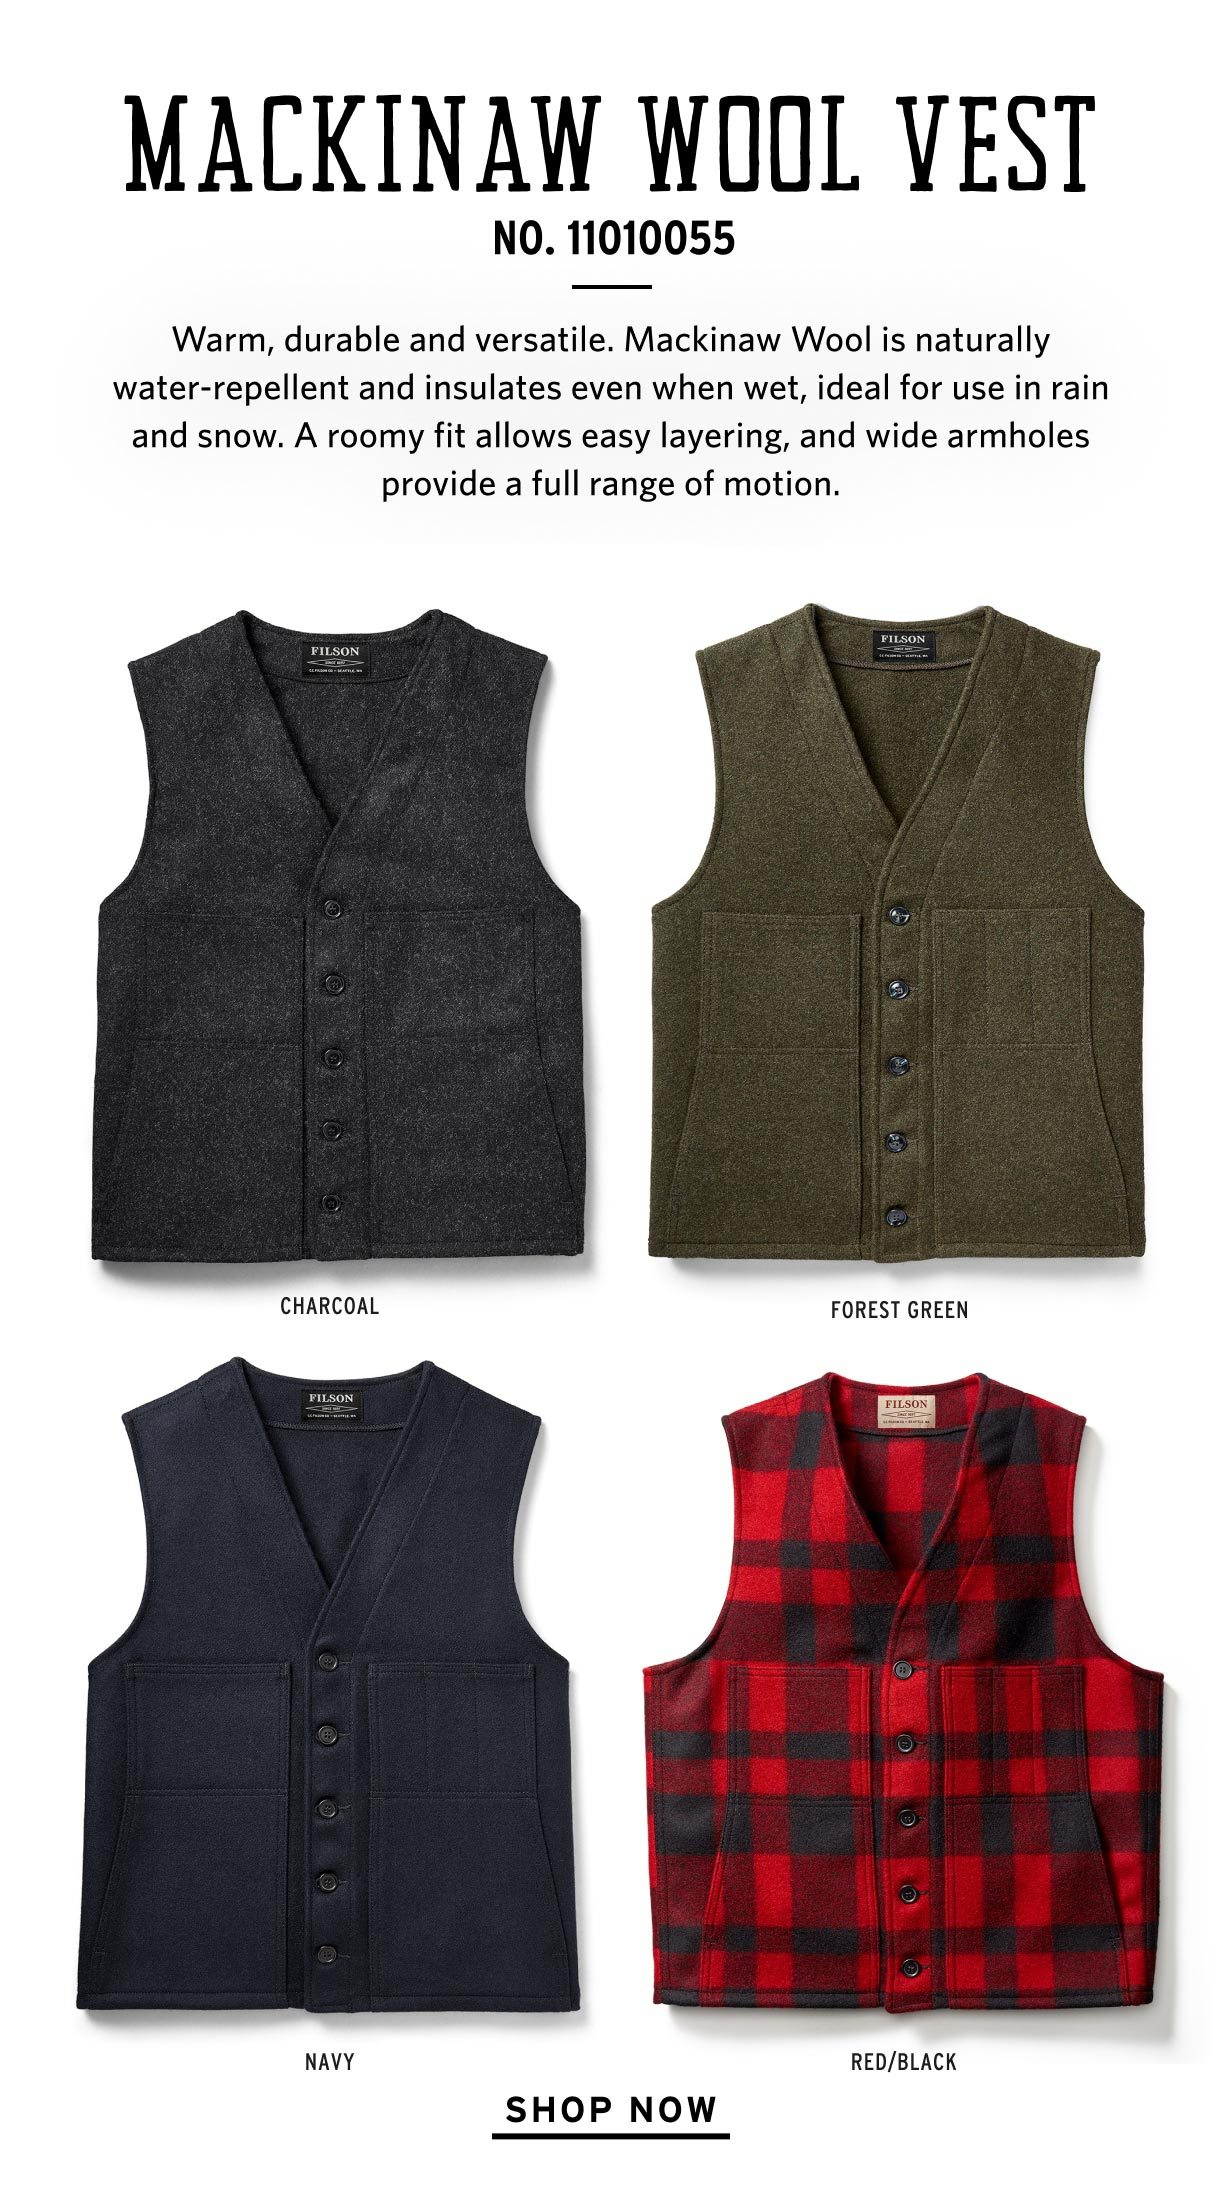 SHOP MACKINAW WOOL VESTS